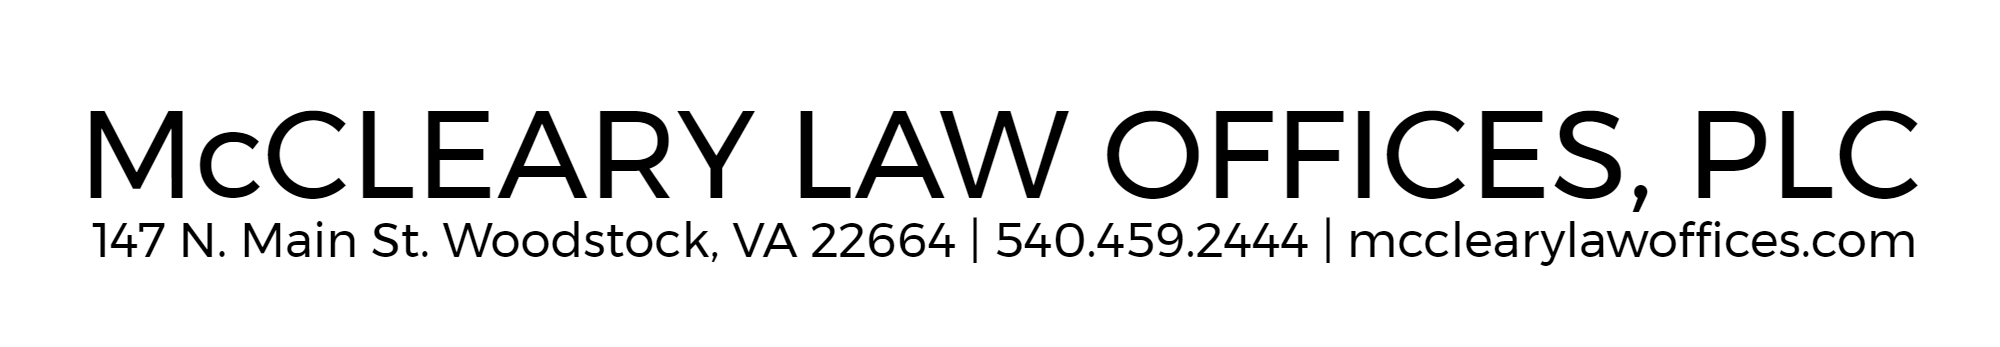 McCLEARY LAW OFFICES, PLC-logo-black.png